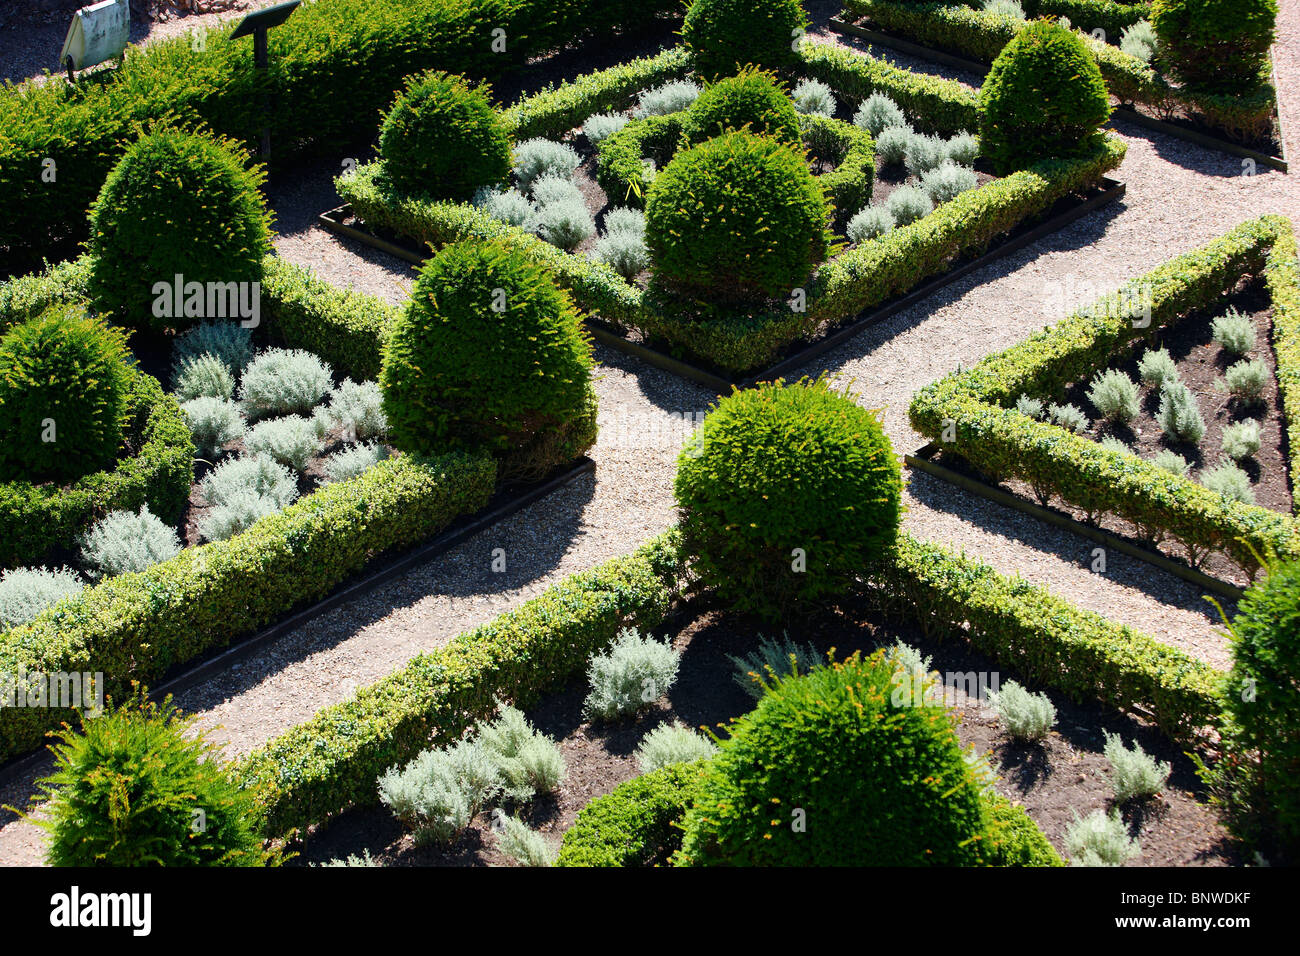 Symmetric garden architecture. Castle Cornet, Guernsey, Channel Islands, UK, Europe. - Stock Image